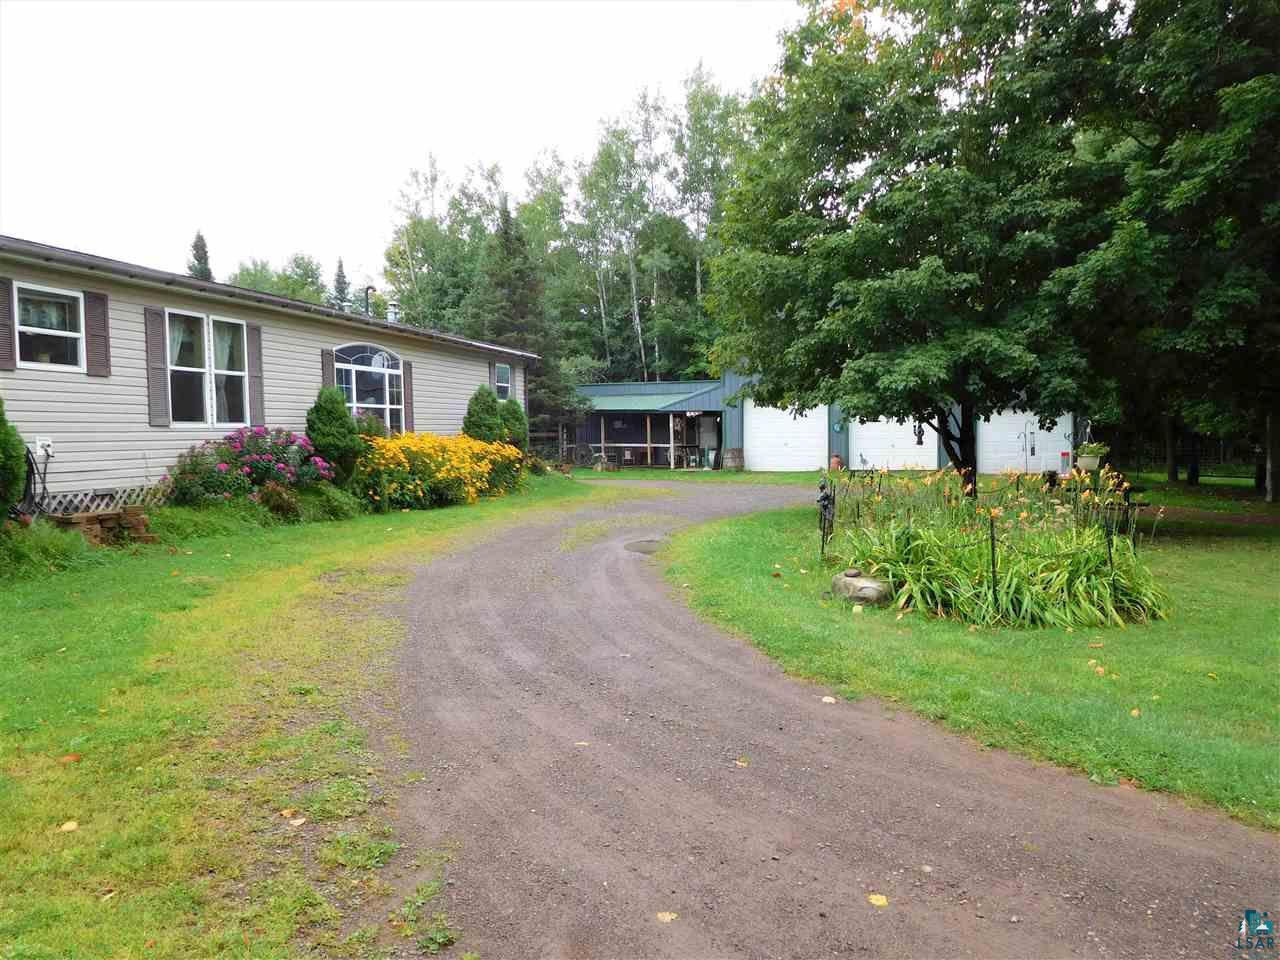 Down the road from Copper Falls, and an easy thirty-minute drive from Ashland (no city traffic or stop & go lights!), you'll love this property that's just under eight acres with a barn, chicken coop, numerous garden areas and trails throughout. The home has been added onto with a shared deck in the center which gives you many options & possibilities. Hobby Farm, Ranch, Air B&B, Offices, Studio Space, Mother-In-Law Suite? Plenty of space to spread out and enjoy two living rooms, kitchen with walk-in pantry, master bedroom with walk-in closet and attached bath with whirlpool tub, mudrooms, office, main floor laundry and much more. The barn has three doors to house vehicles and equipment, a tack room, work room and upstairs storage/hay area.  Rock the evenings away on a rocking chair under the covered porch while the horses saunter by.  Numerous perennials and herbs are here to get your gardening started, come take a look!